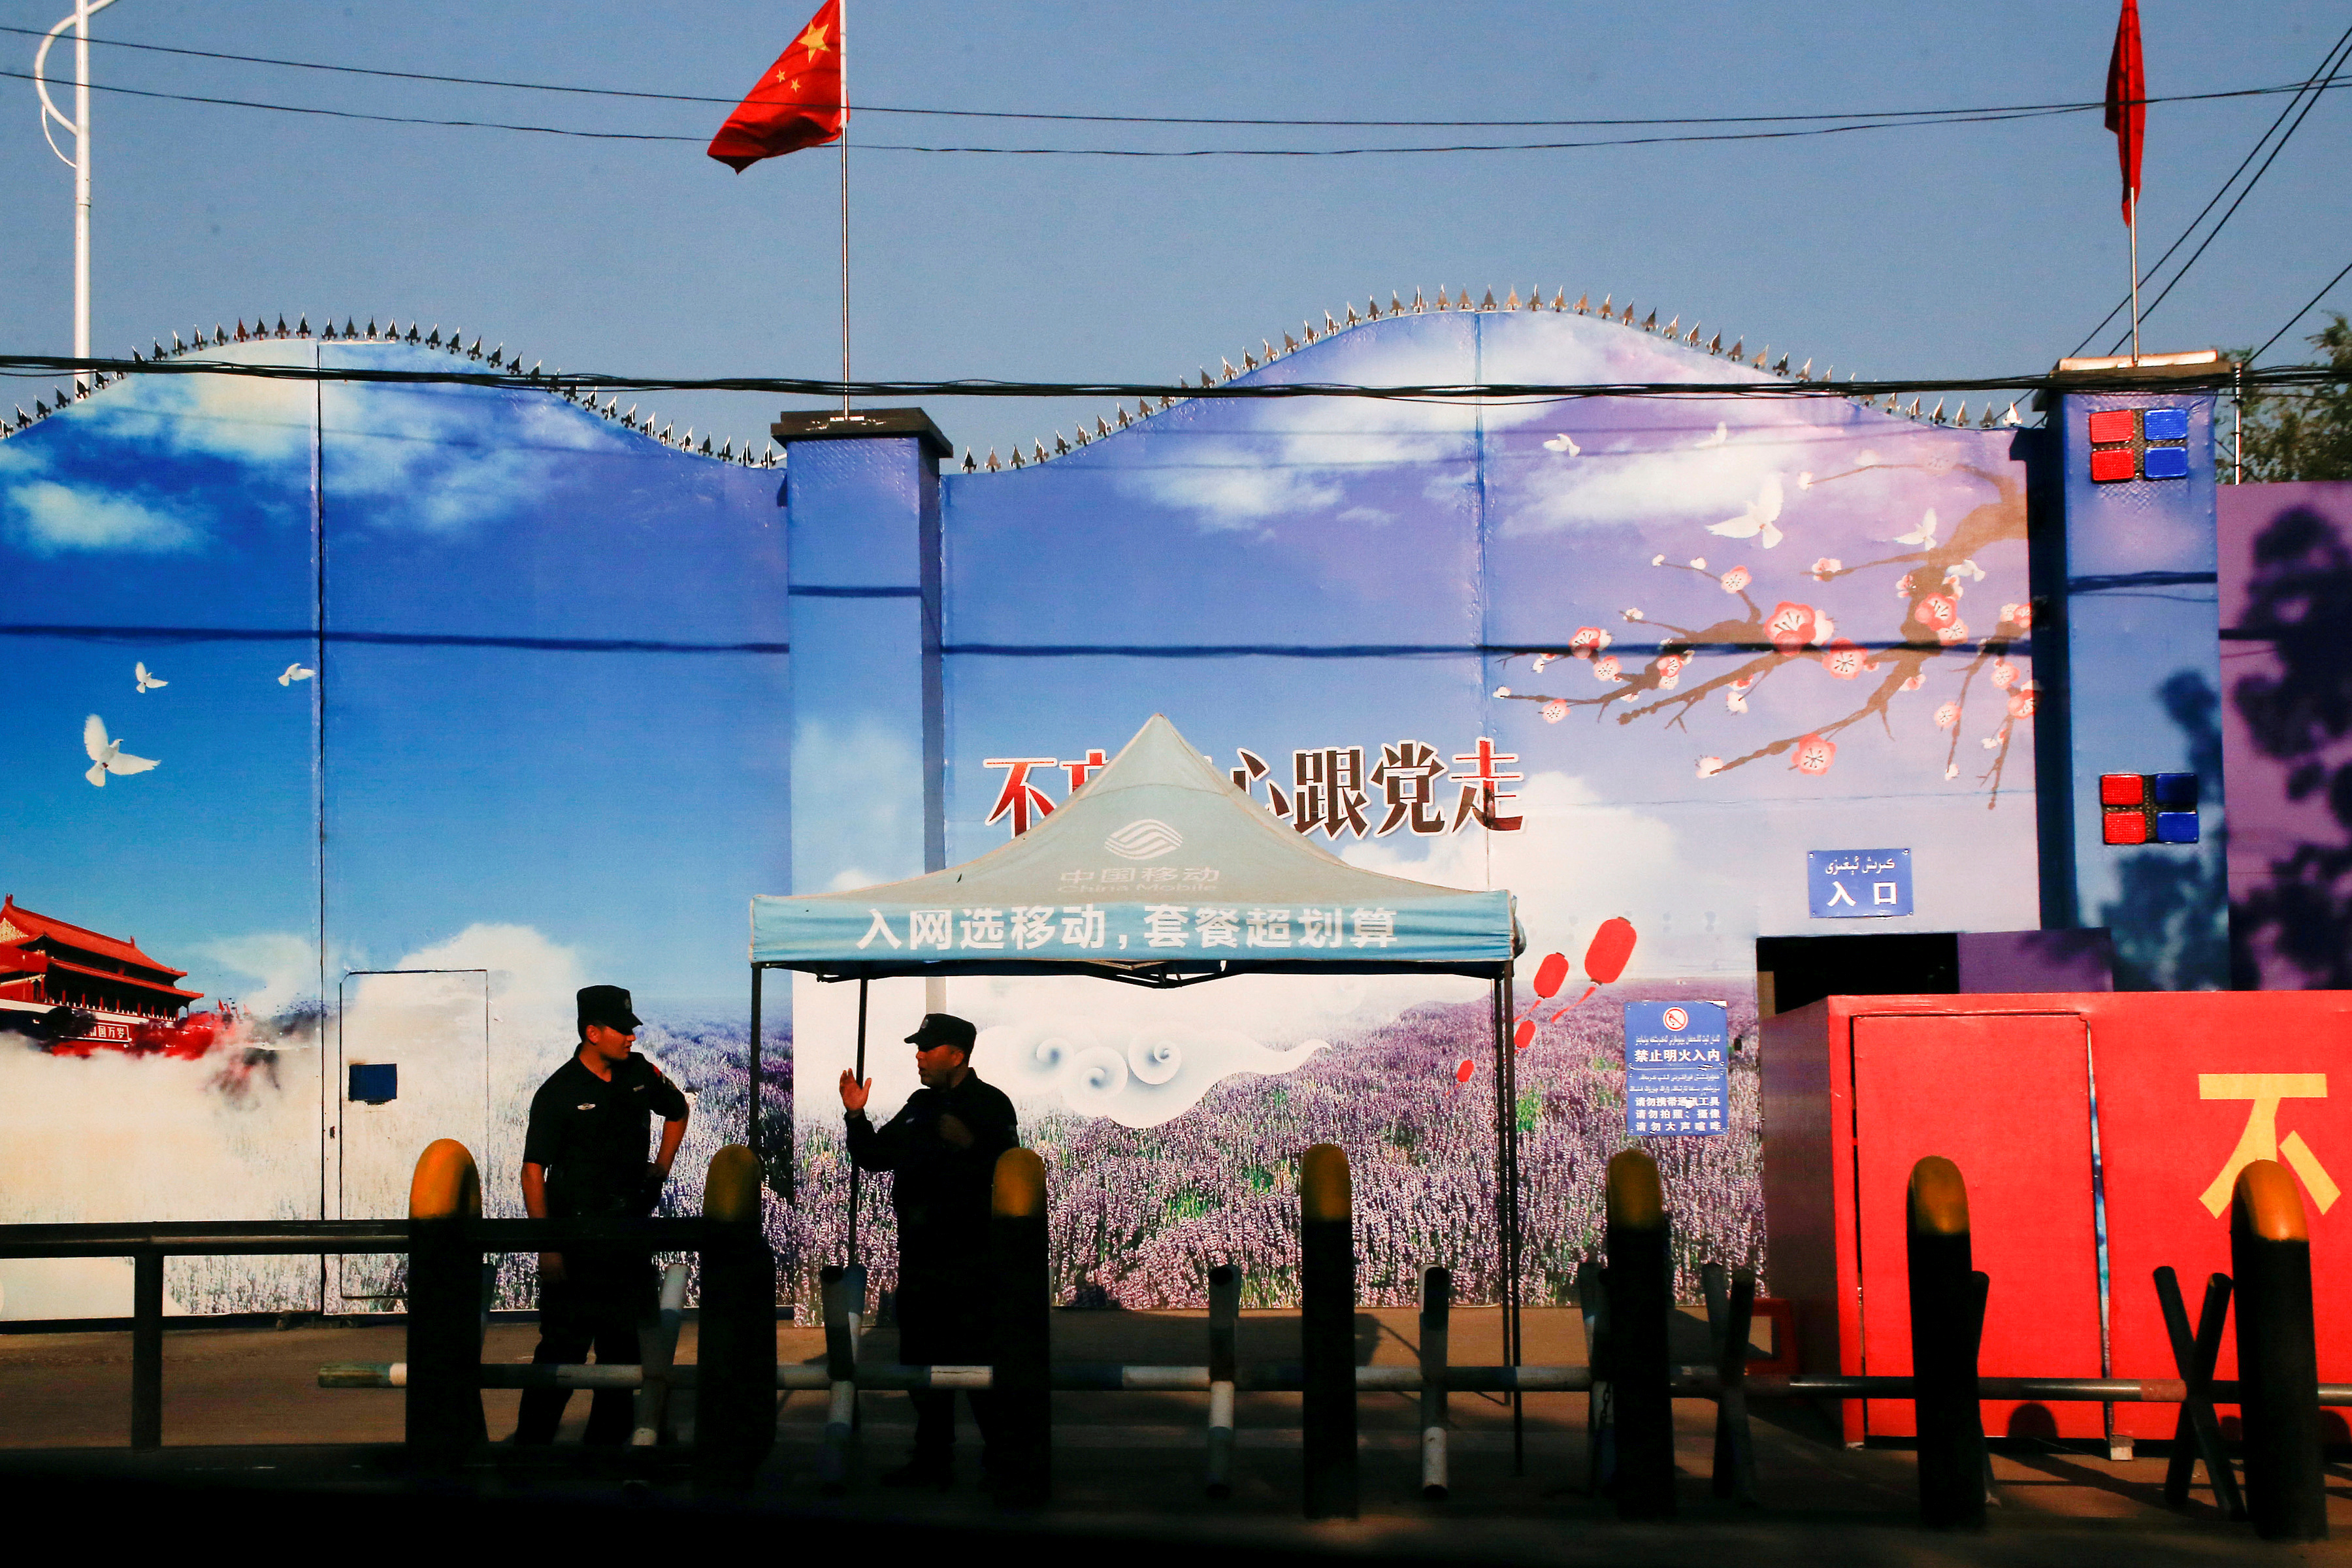 FILE PHOTO: Security guards stand at the gates of what is officially known as a vocational skills education centre in Huocheng County in Xinjiang Uighur Autonomous Region, China September 3, 2018.REUTERS/Thomas Peter/File Photo/File Photo